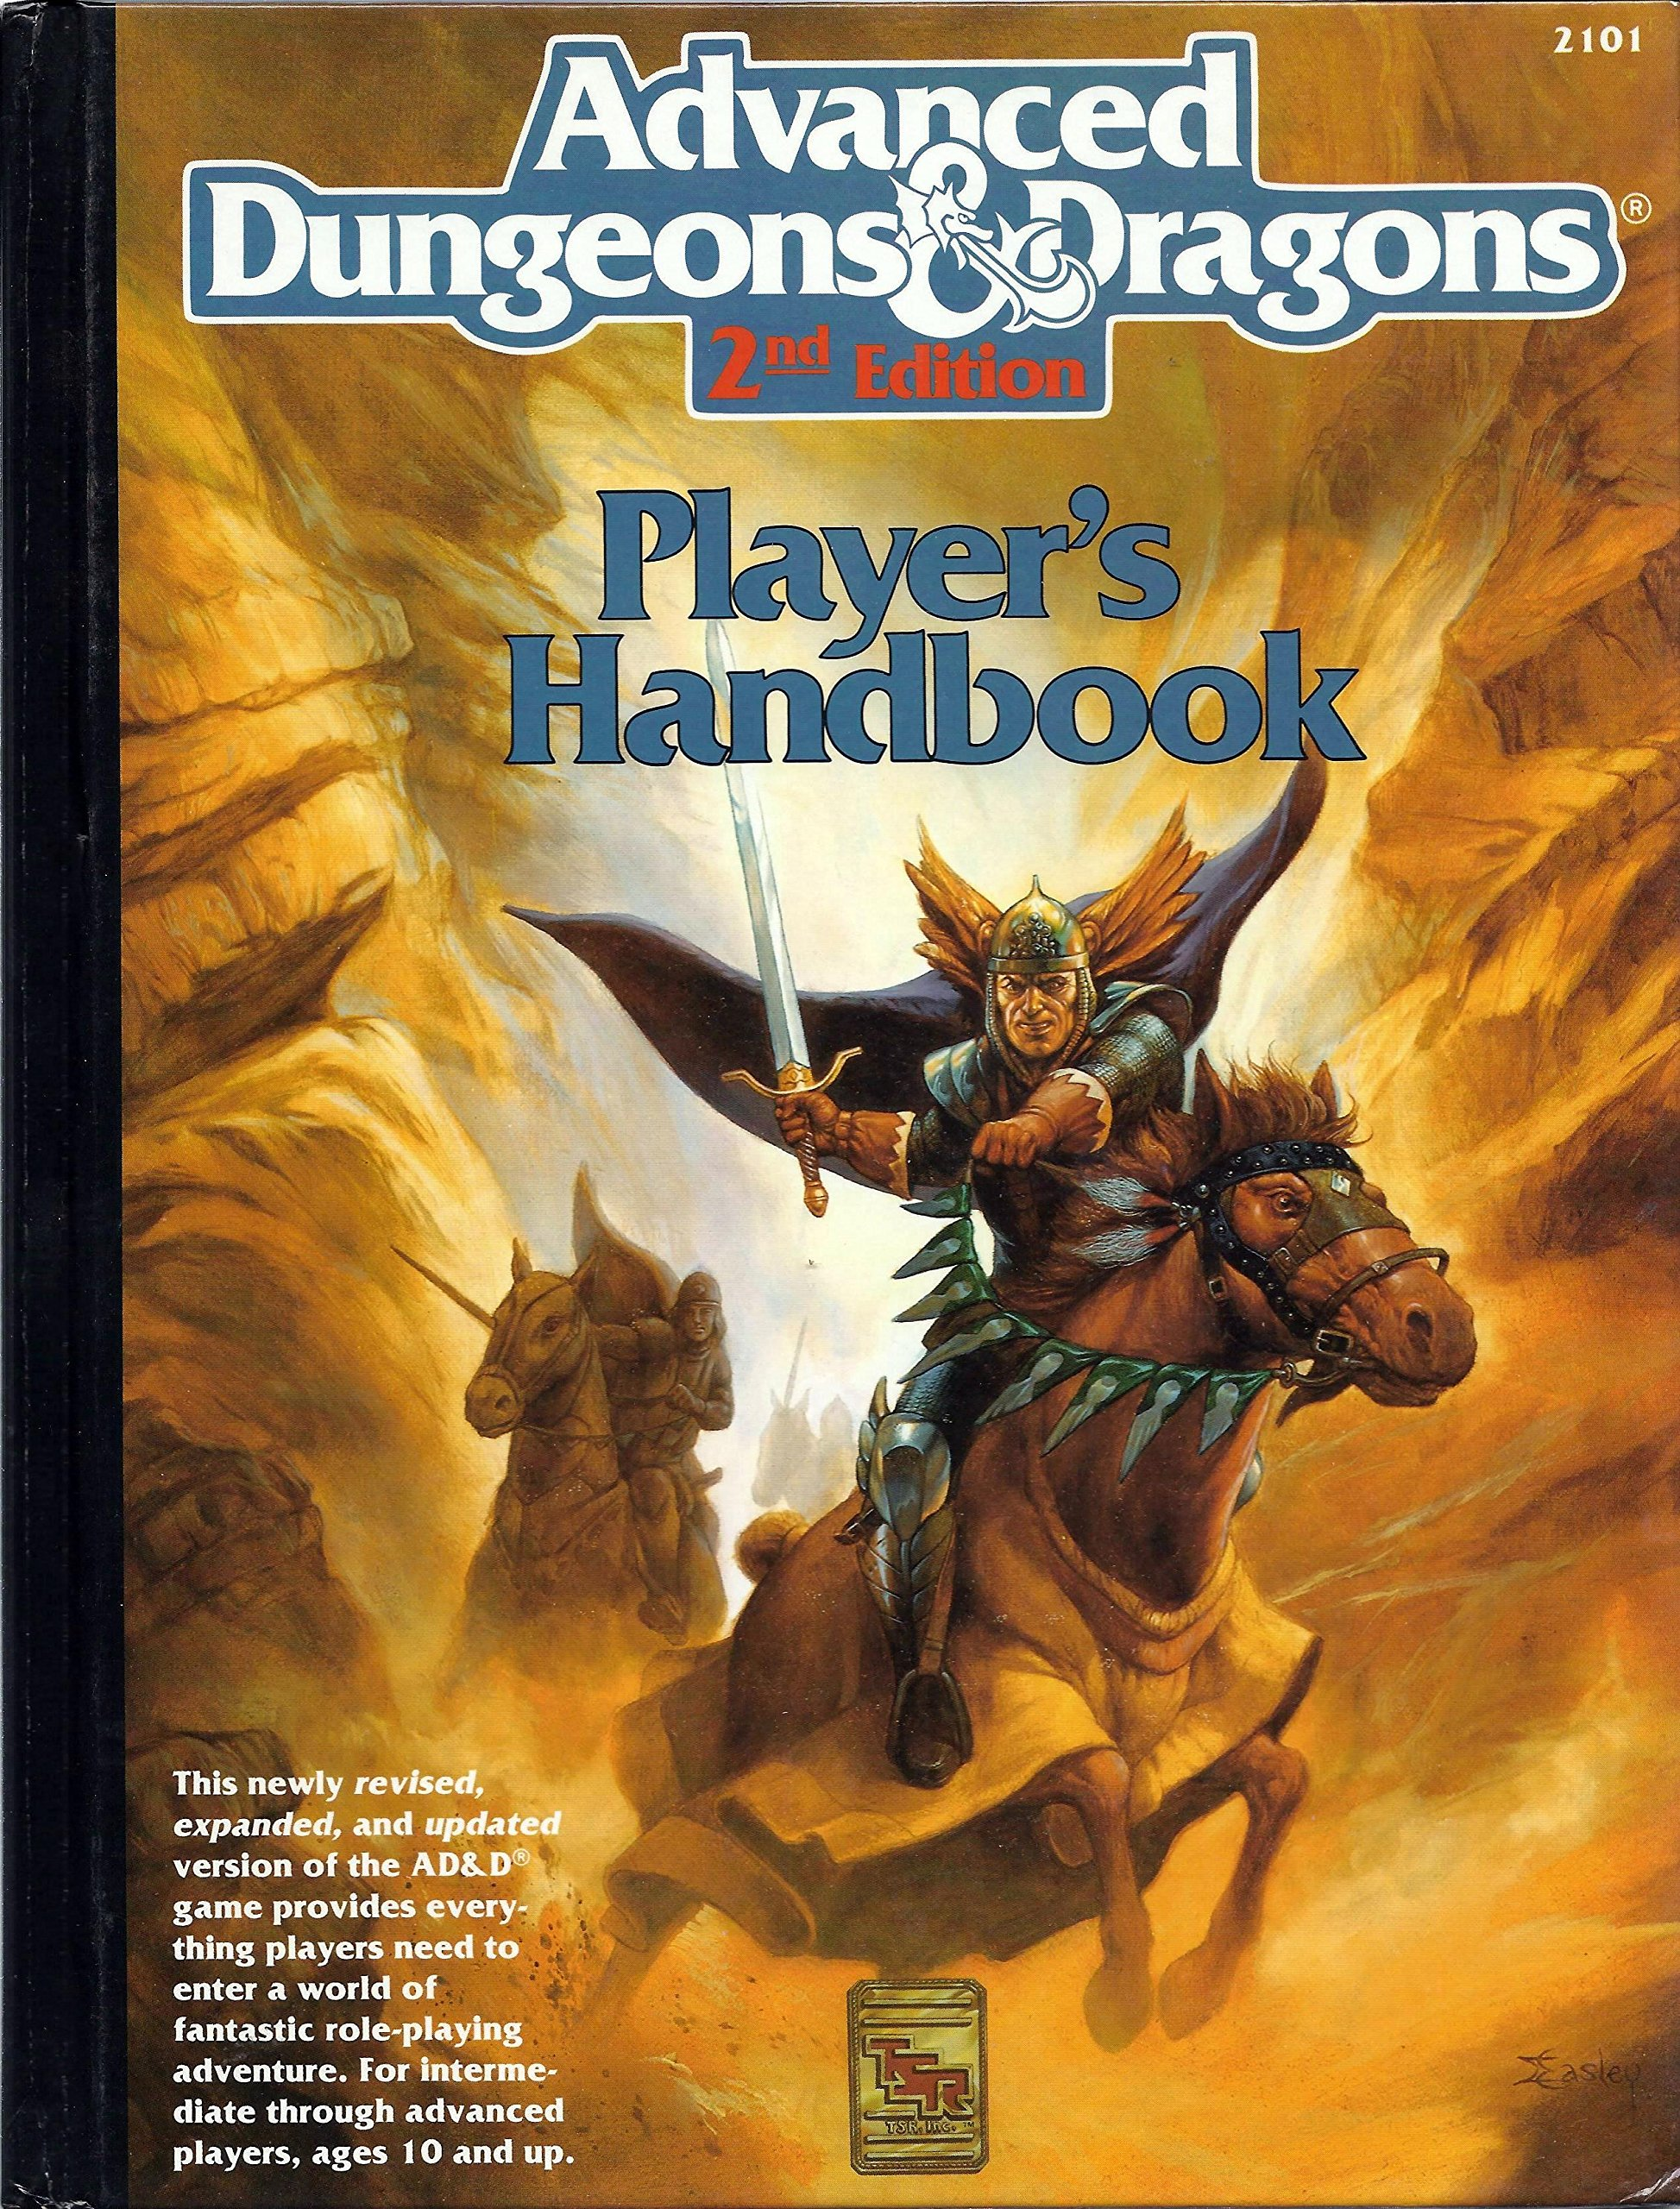 Advanced Dungeons and Dragons: 2nd Edition Player's Handbook: Amazon.co.uk:  David Cook: 9780880387163: Books